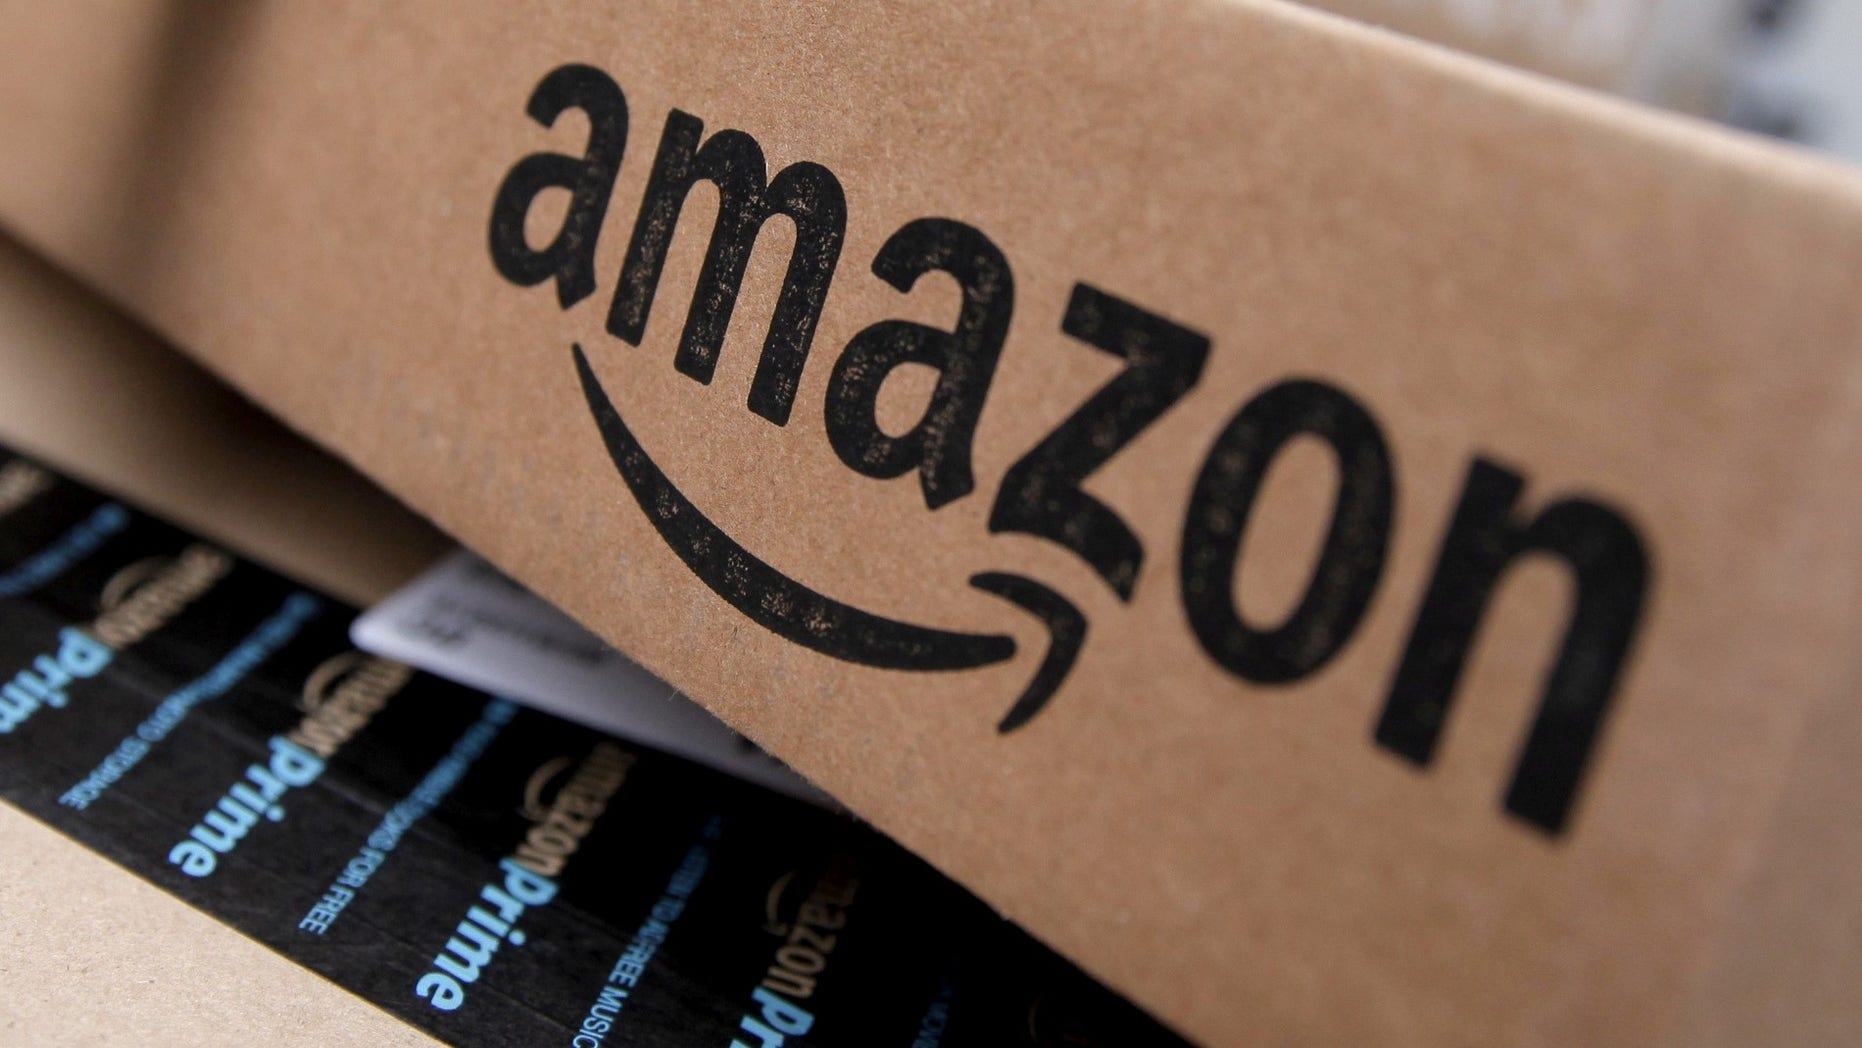 Here are a tip 10 dark tricks each Amazon shopper should know.